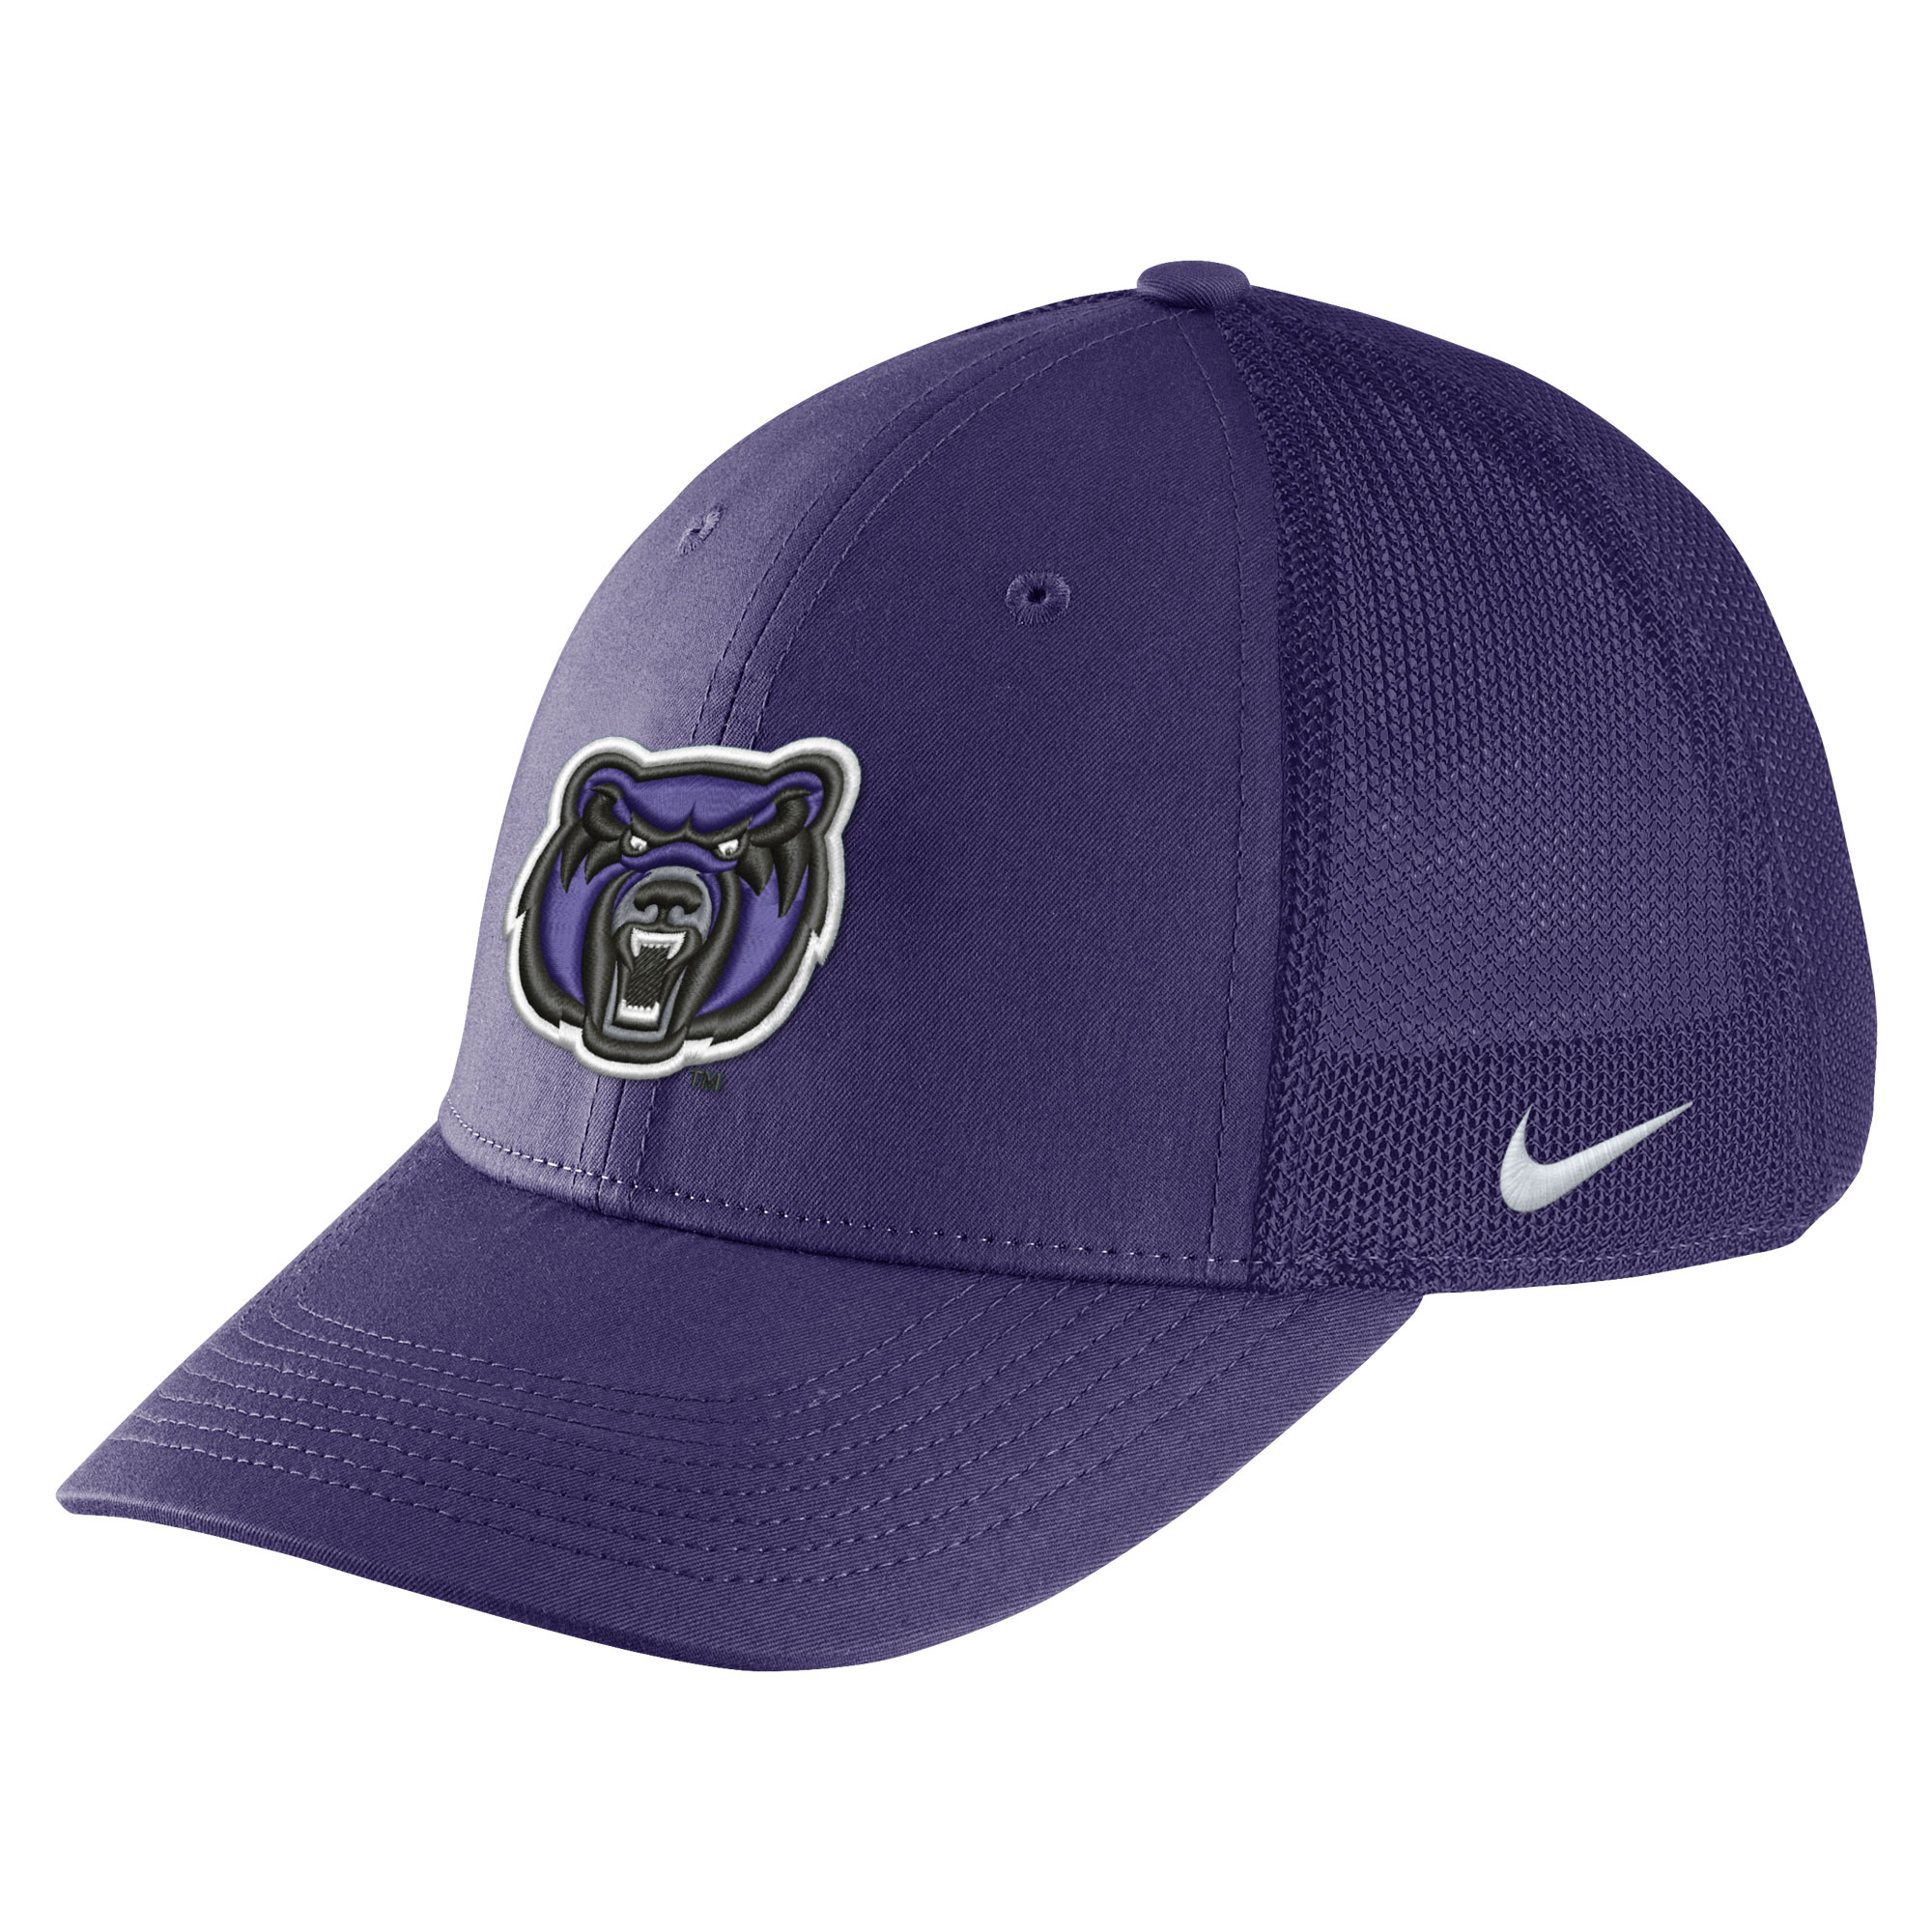 Youth Aero Bill Swoosh Flex Hat